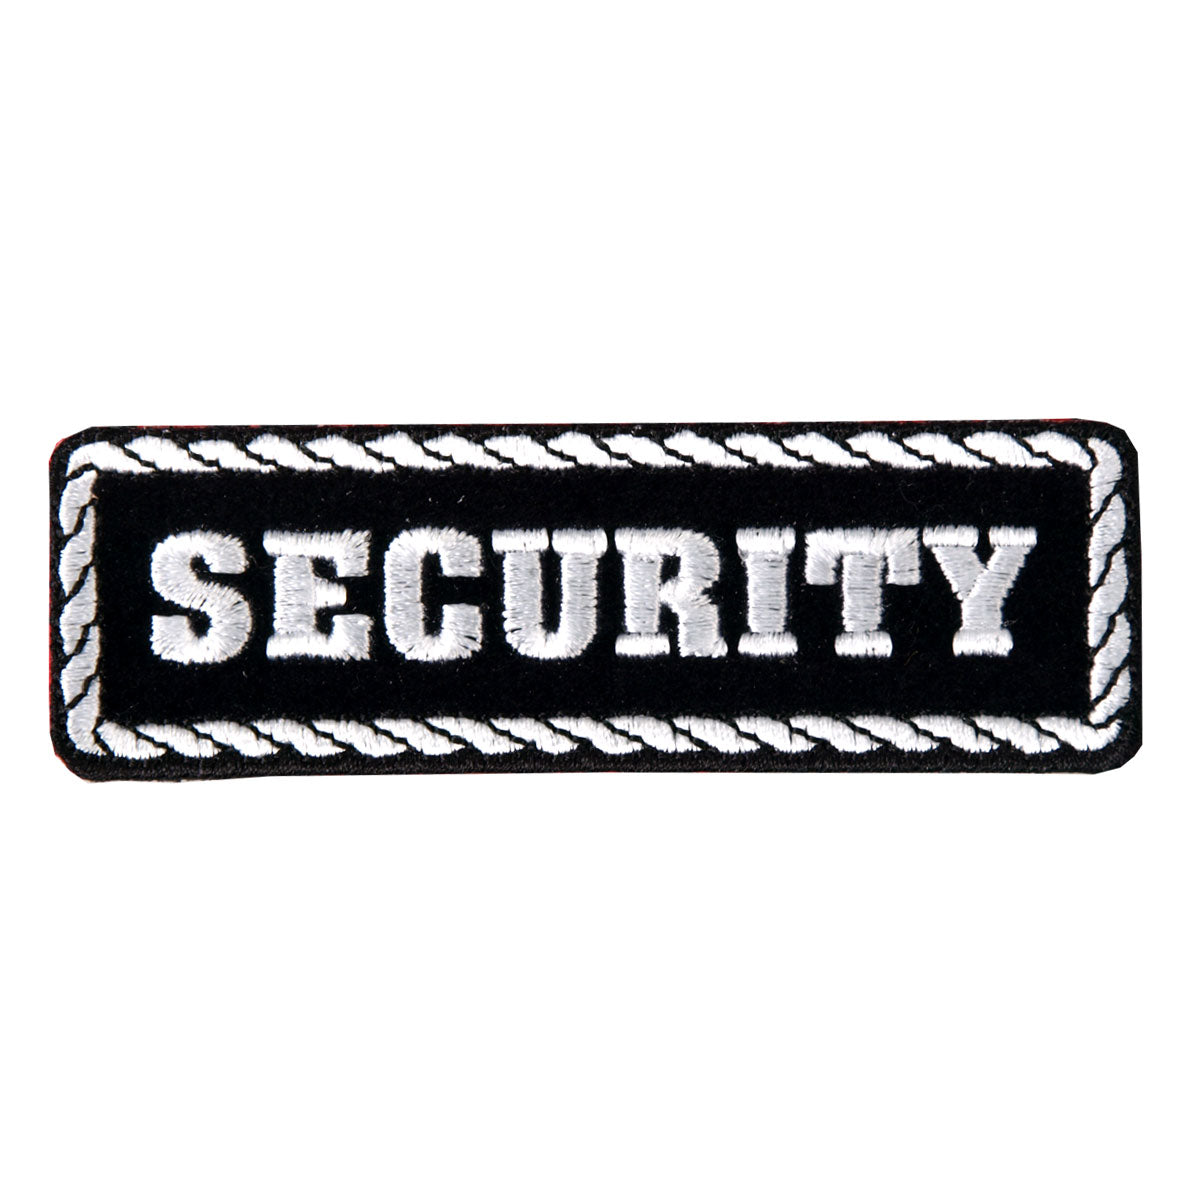 "Hot Leathers Security 4"" x 1"" Patch"